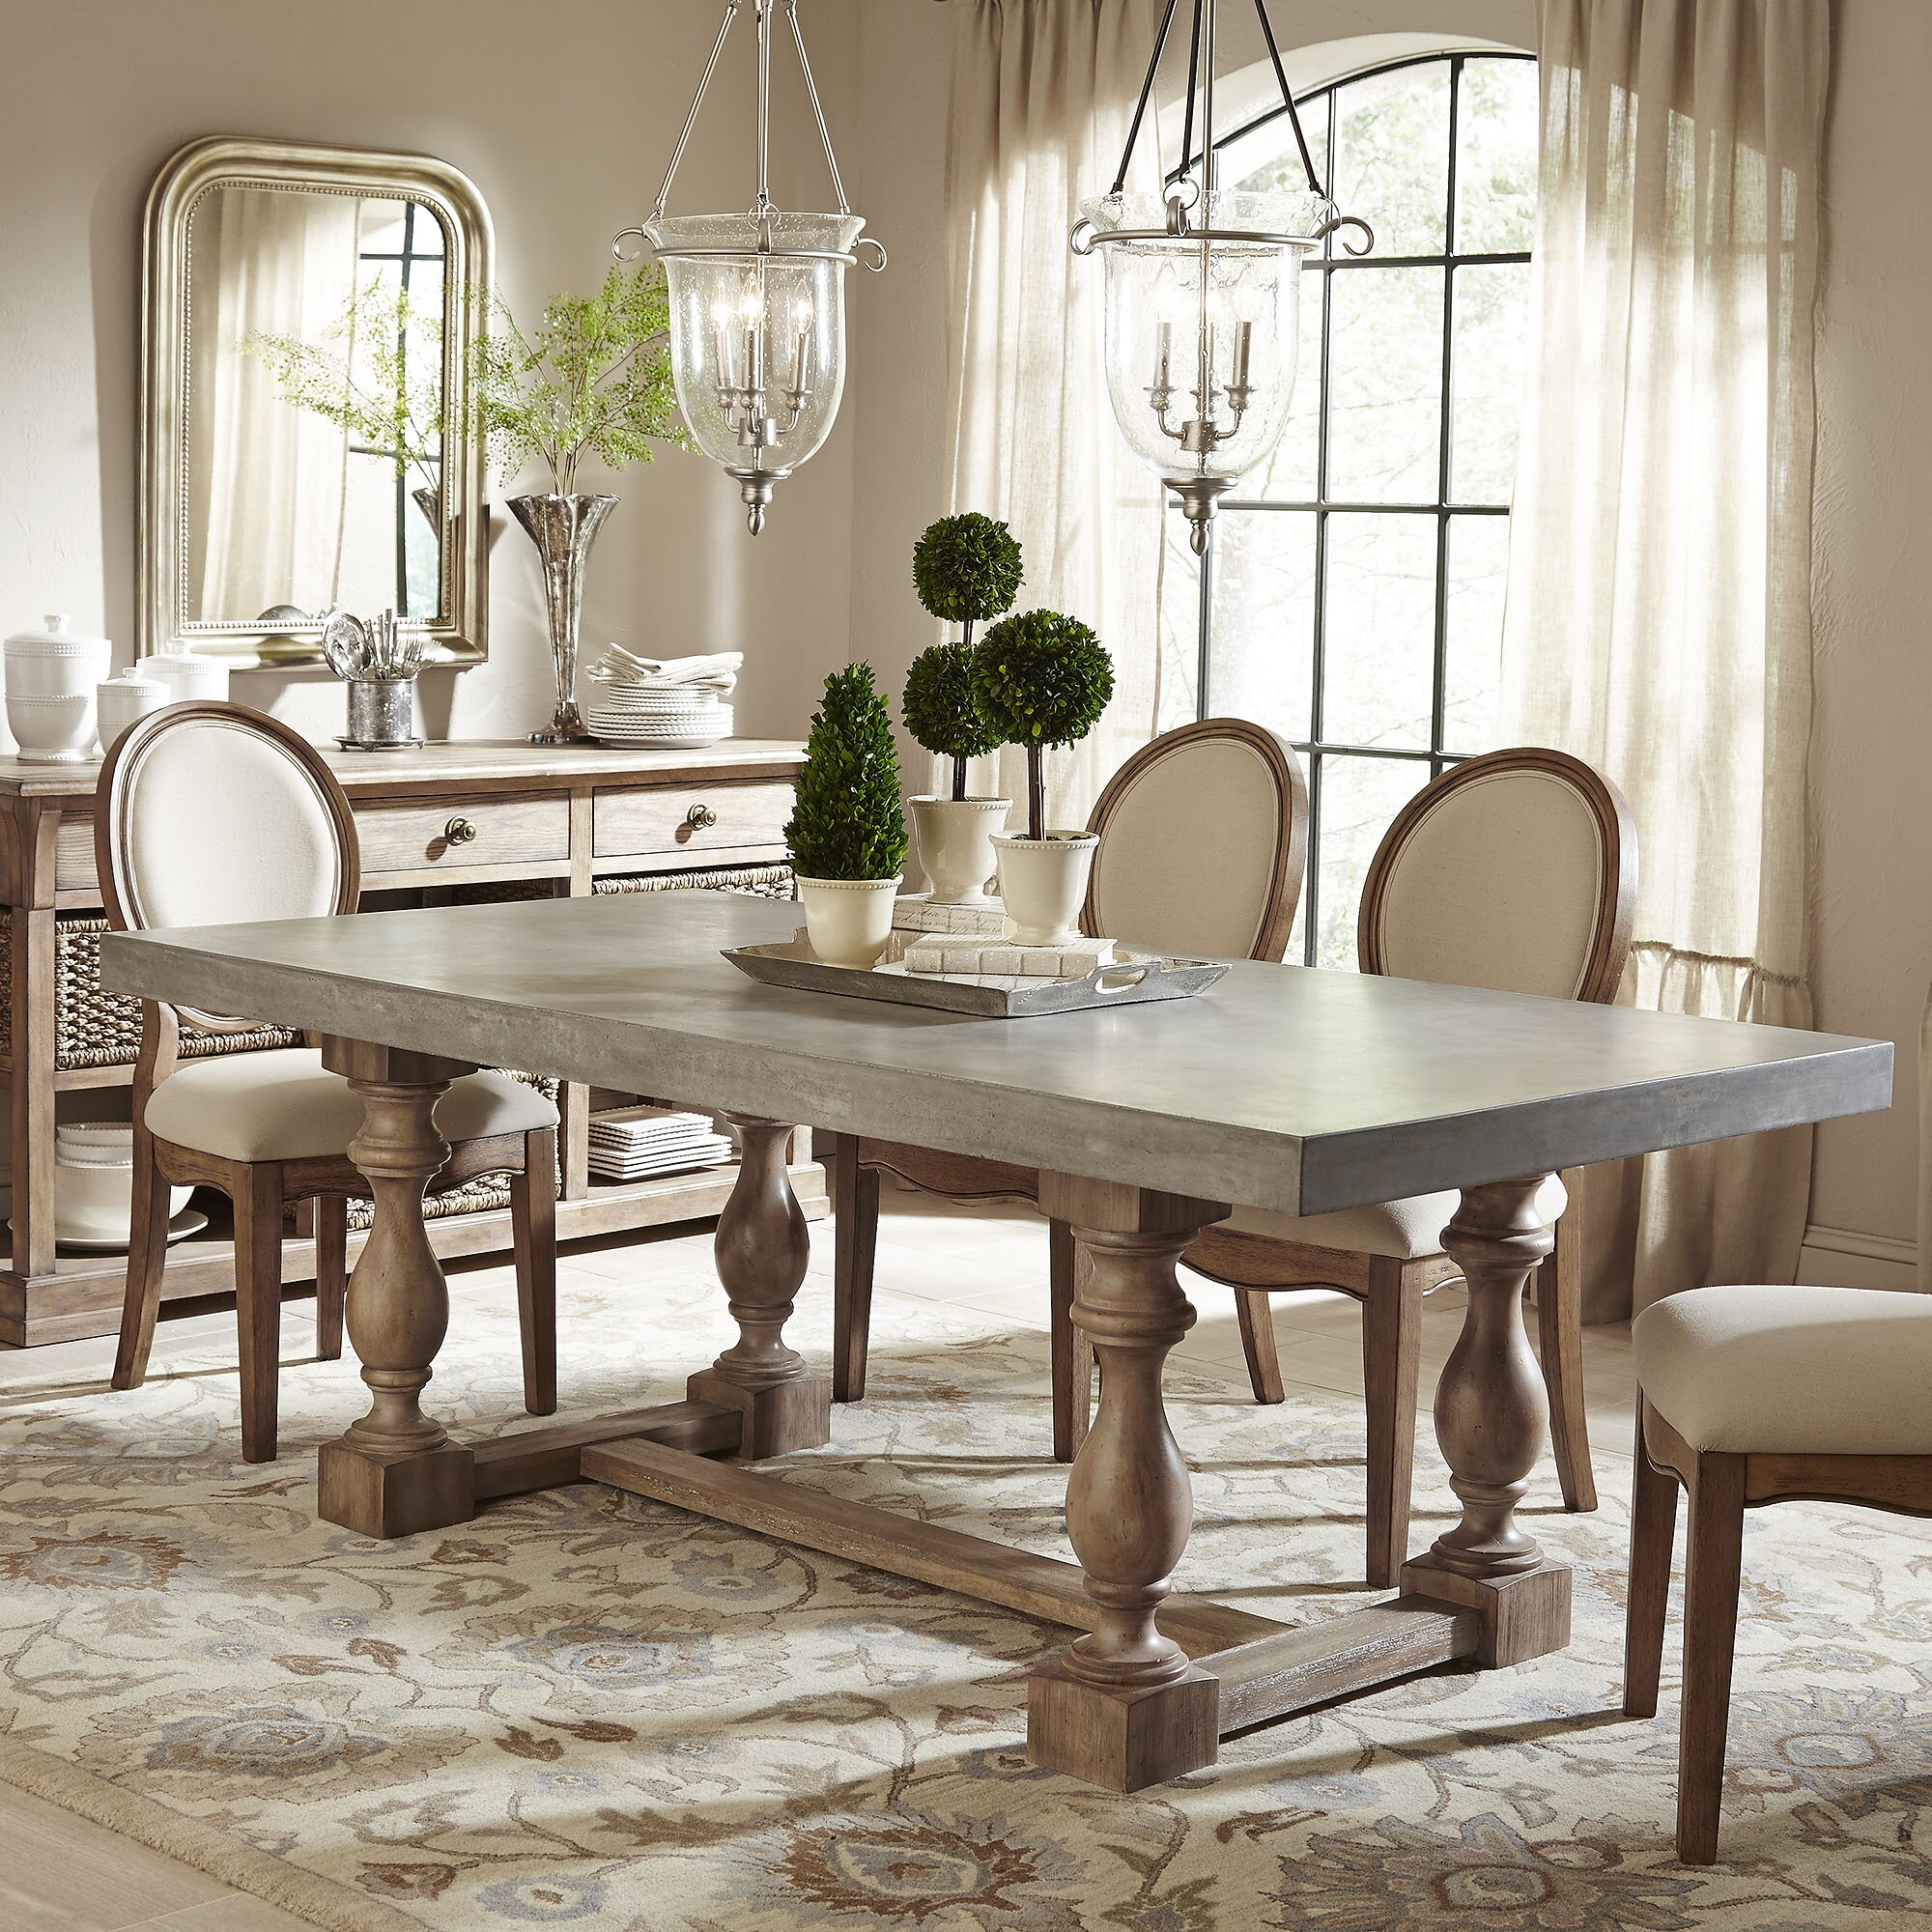 Birch Lane Rollins Extending Dining Table: Birch Lane Forsythe Dining Table & Reviews